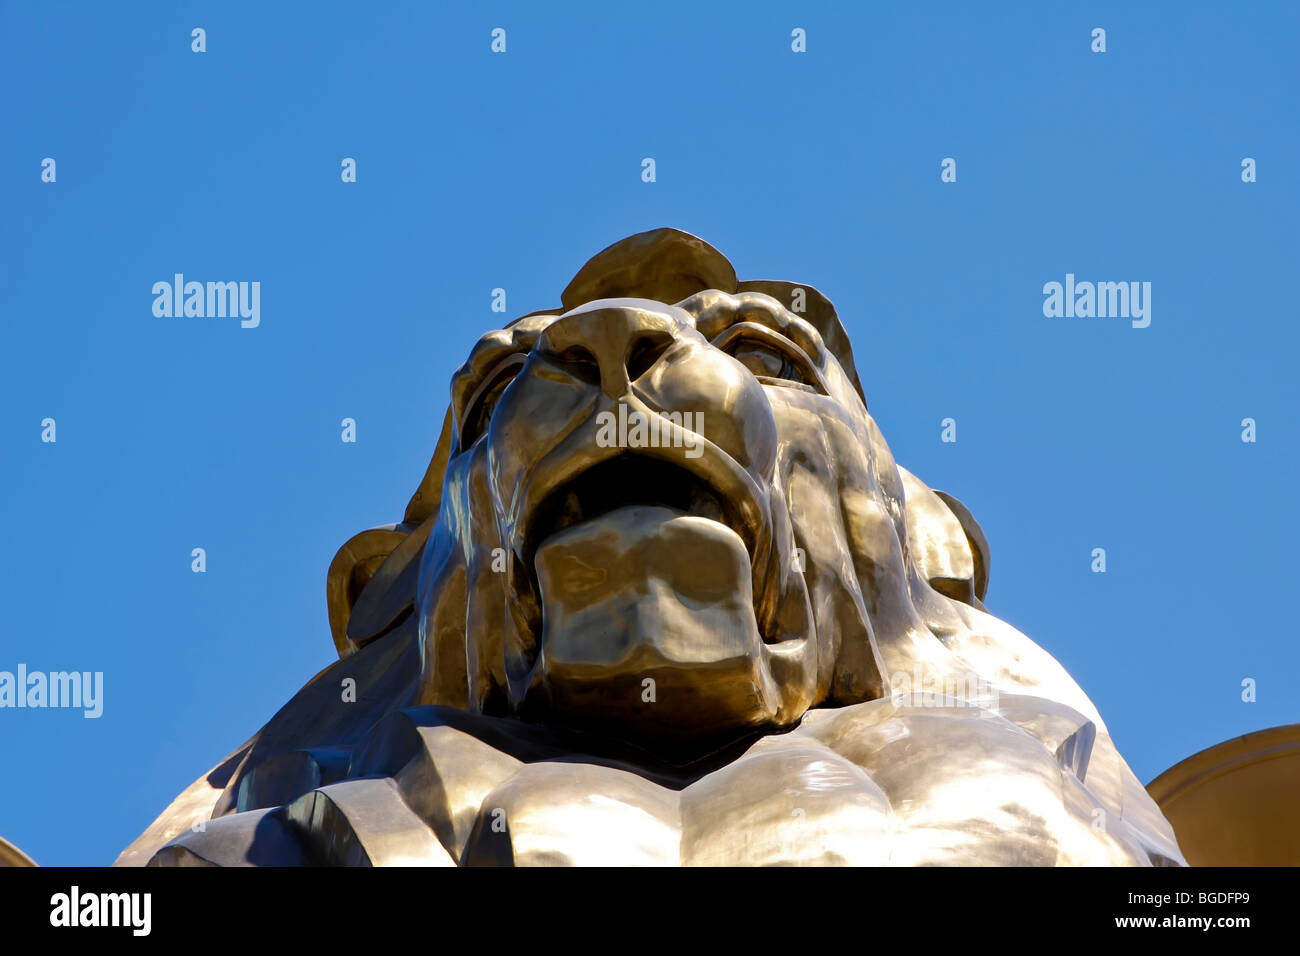 Lion of the MGM Grand hotel in Las Vegas, Nevada, USA - Stock Image